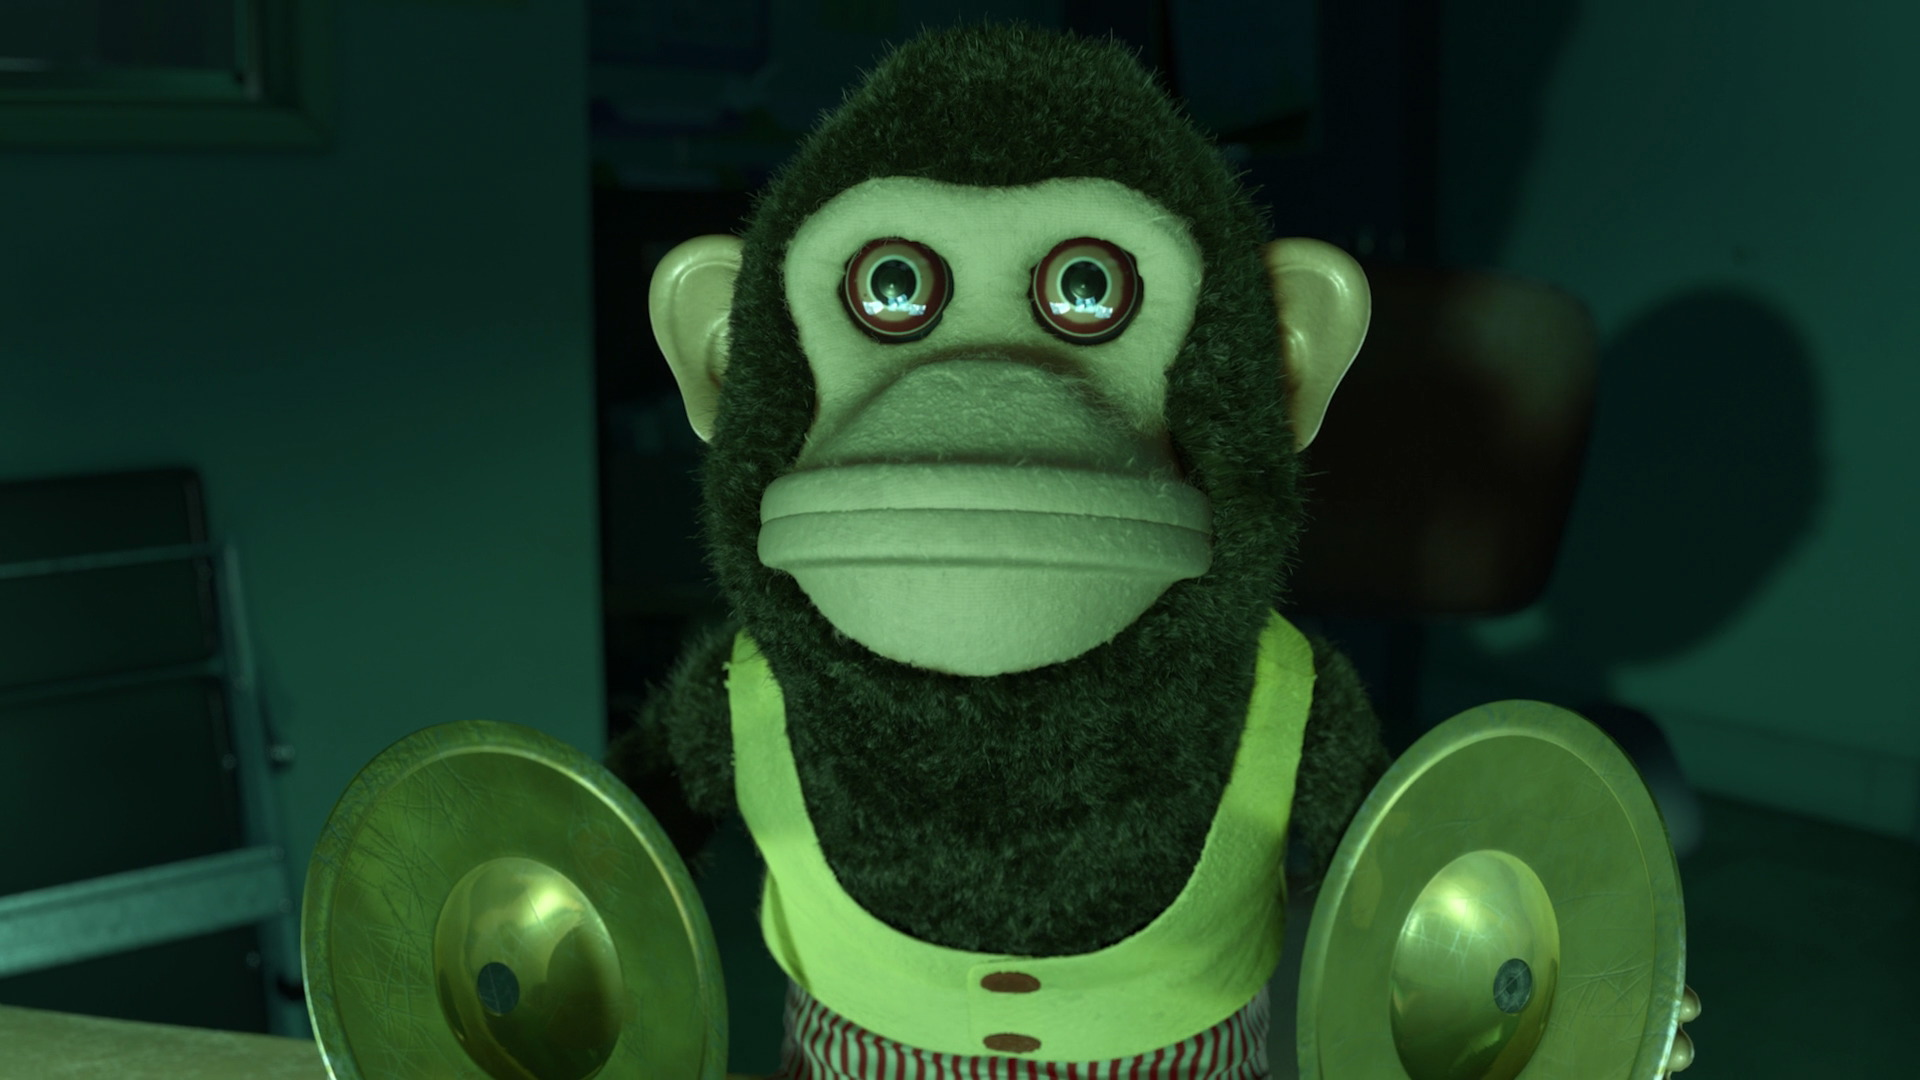 singe-personnage-toy-story-3-02